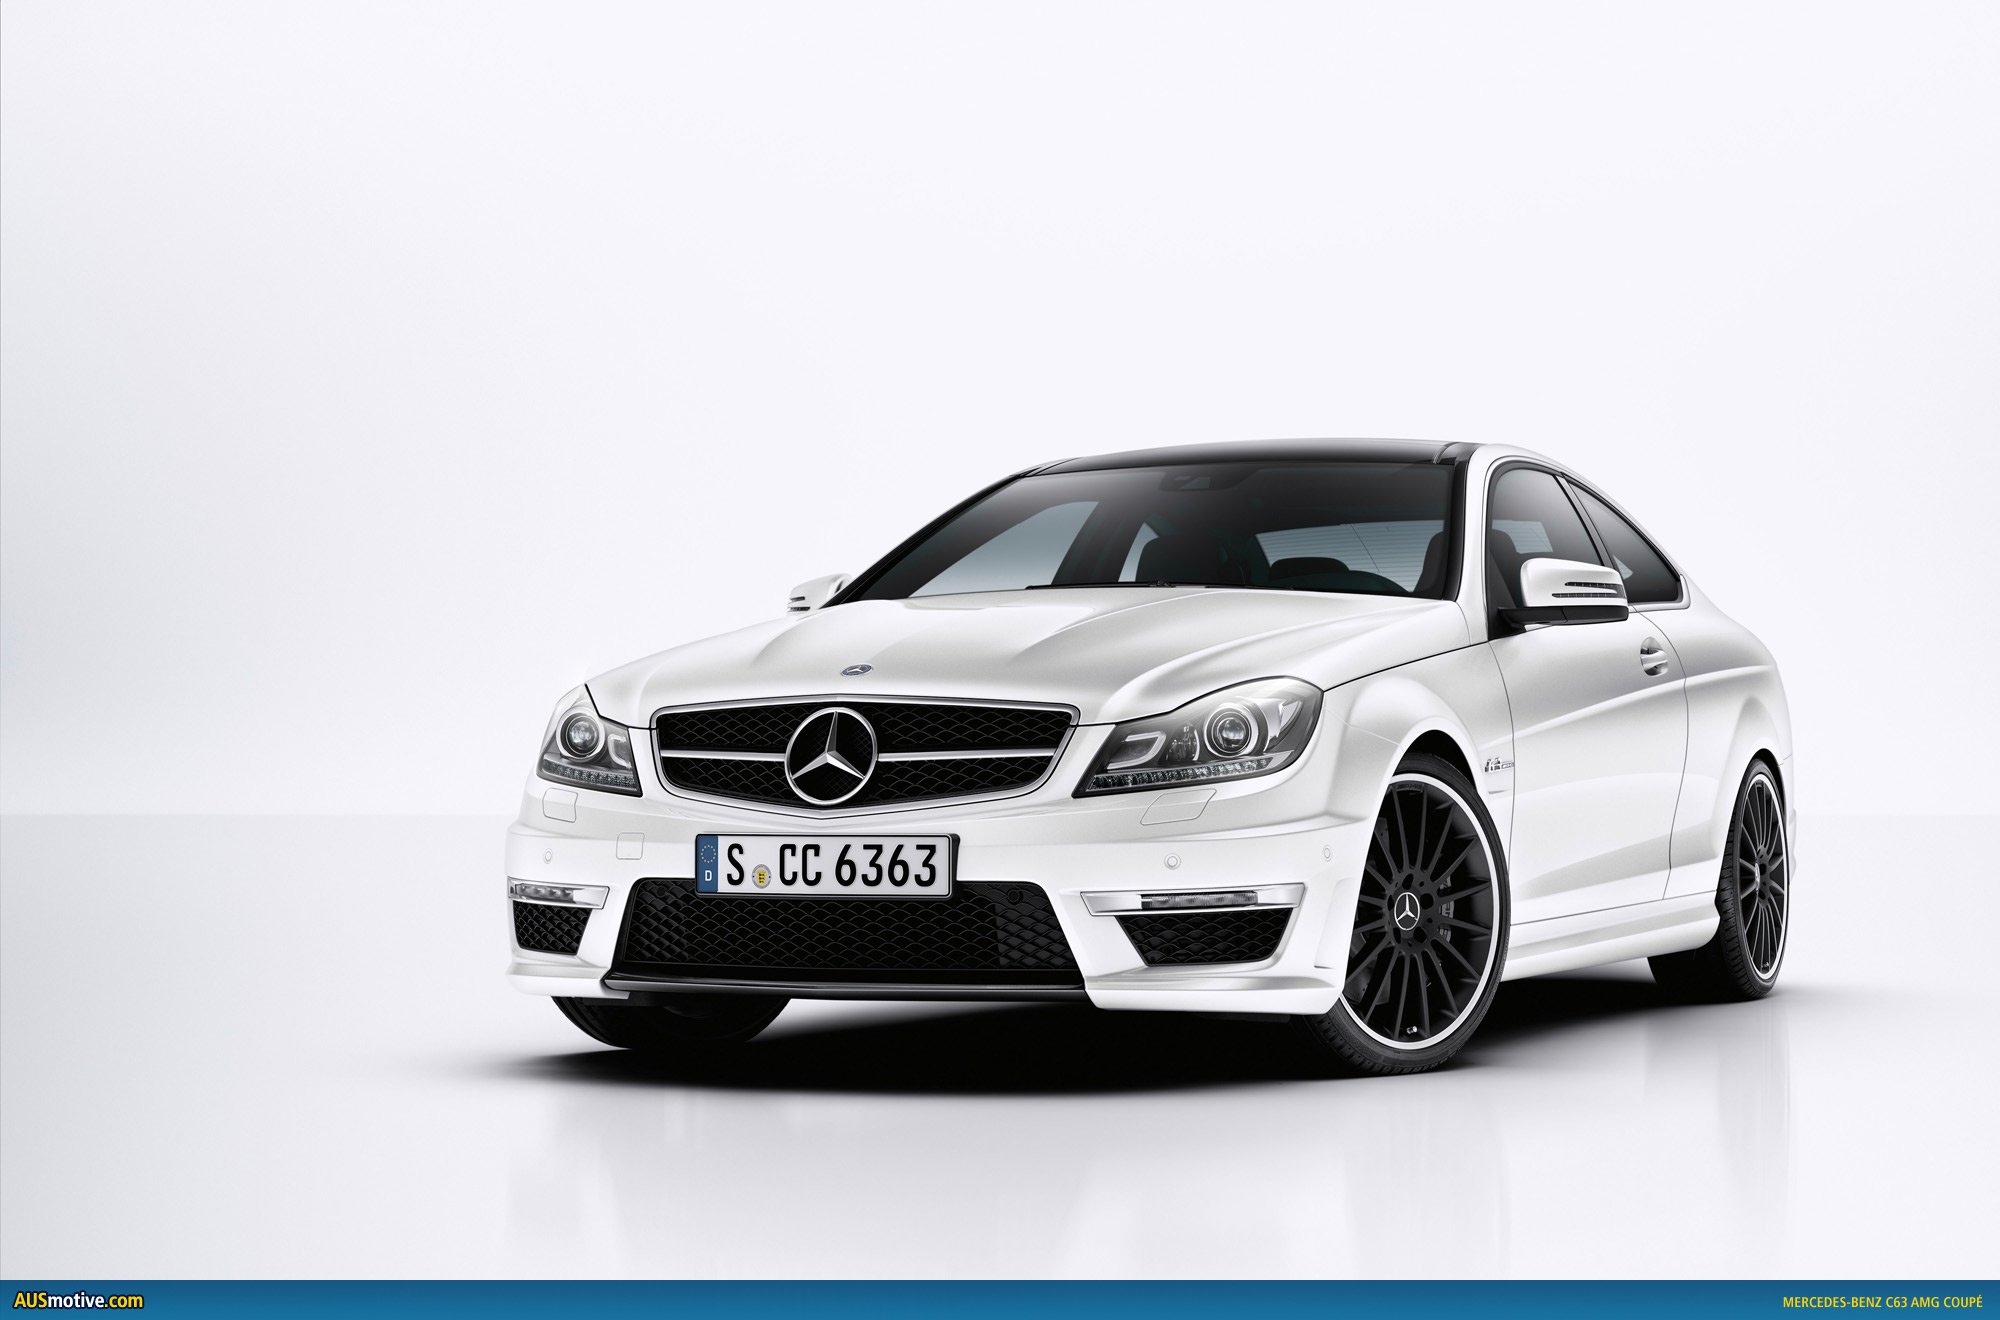 Mercedes benz c63 amg coup photo gallery for Mercedes benz c63 amg sedan